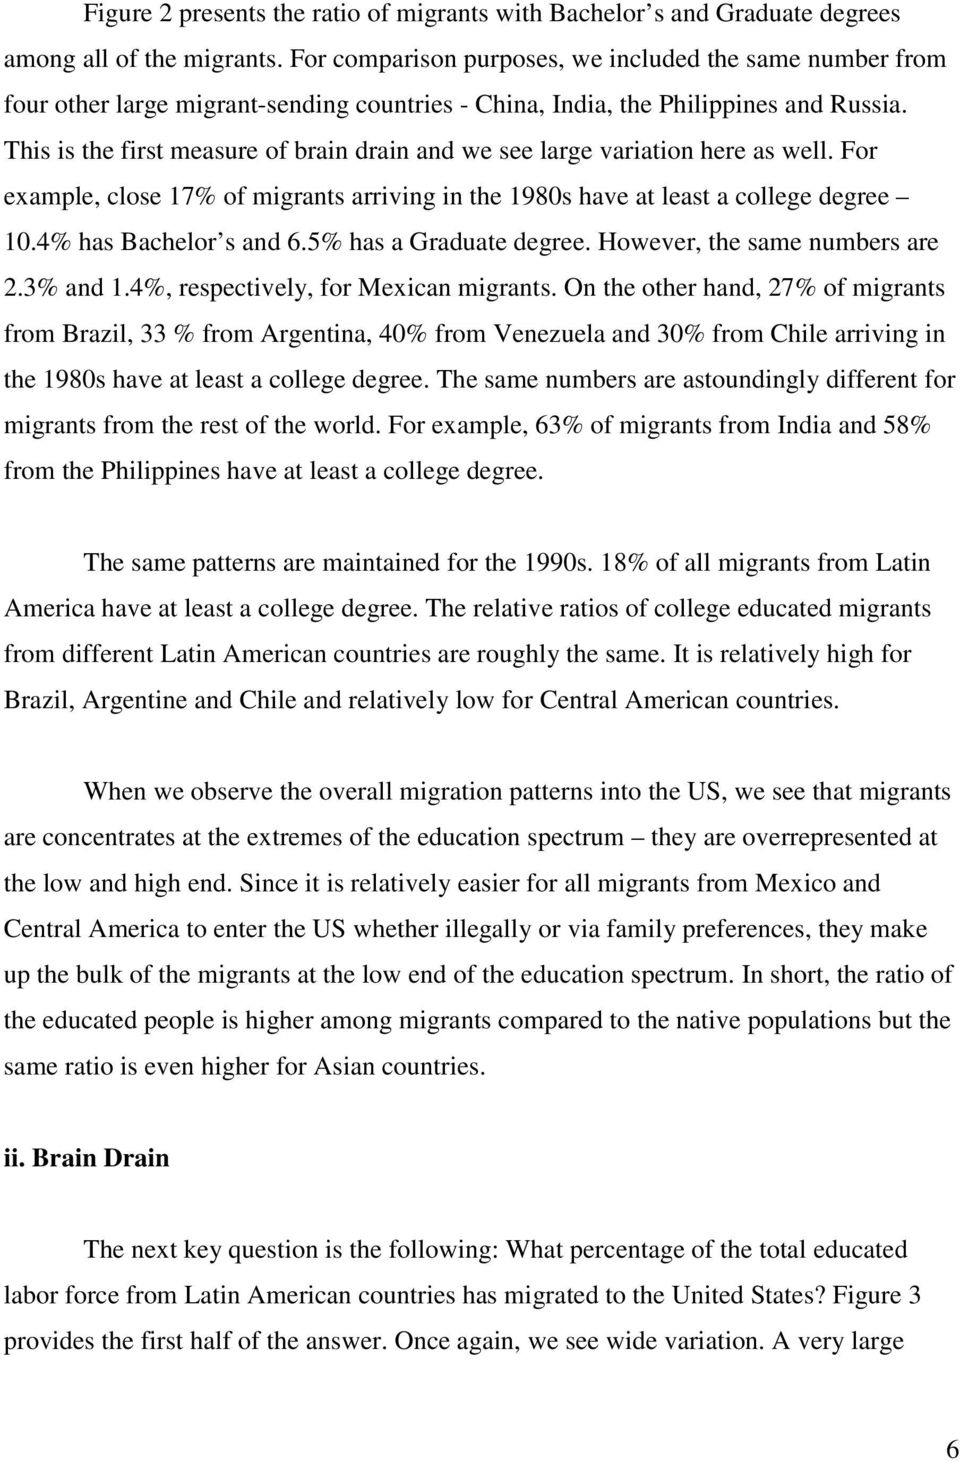 This is the first measure of brain drain and we see large variation here as well. For example, close 17% of migrants arriving in the 1980s have at least a college degree 10.4% has Bachelor s and 6.